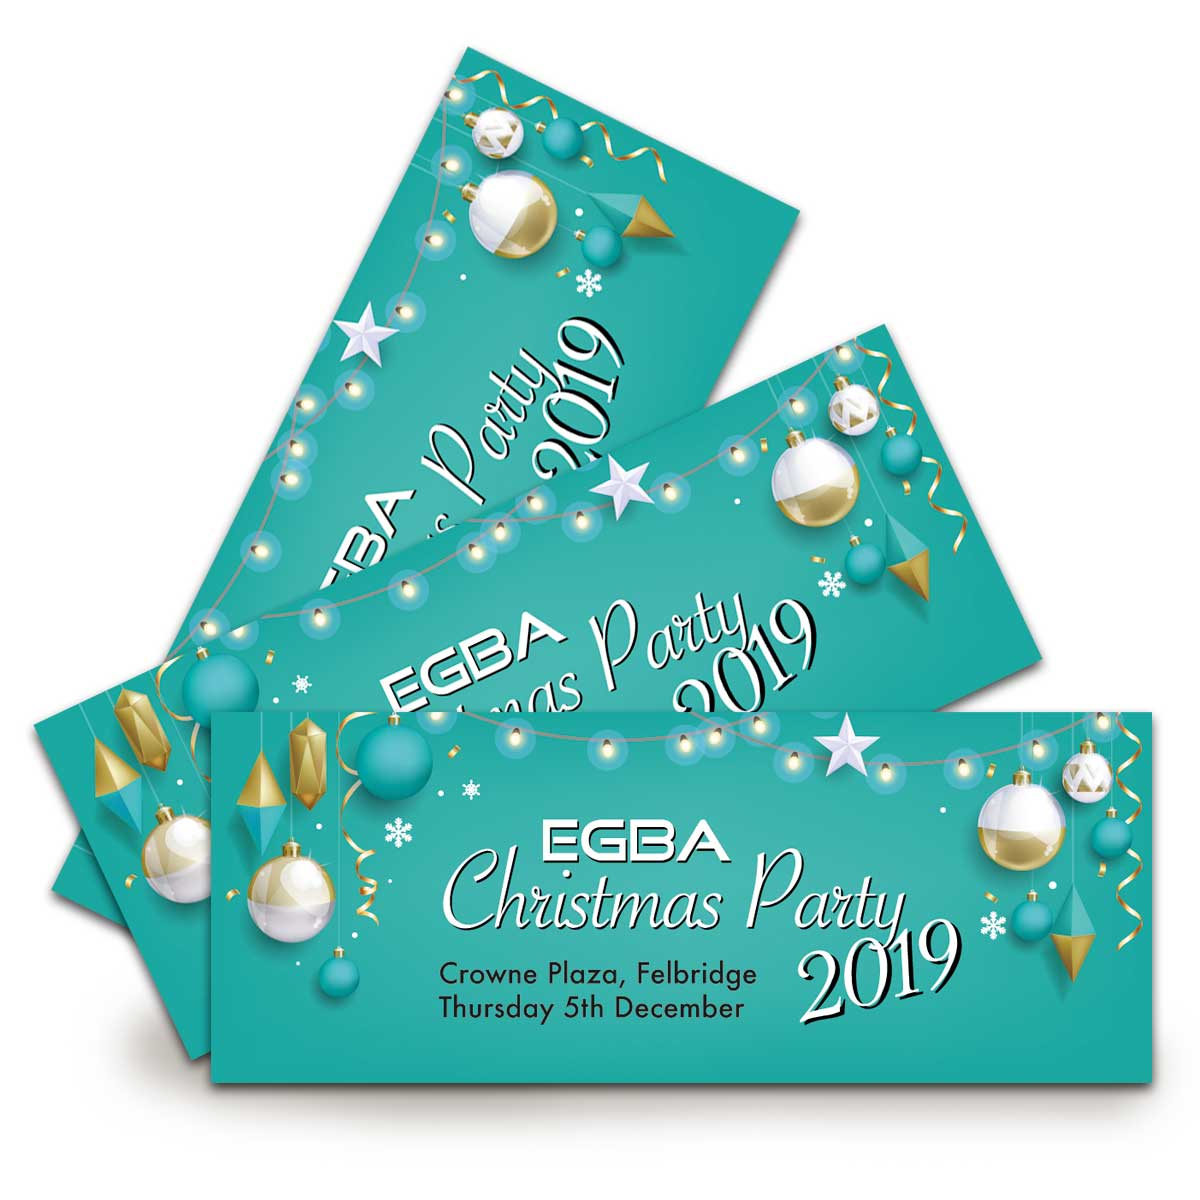 EGBA Christmas Party